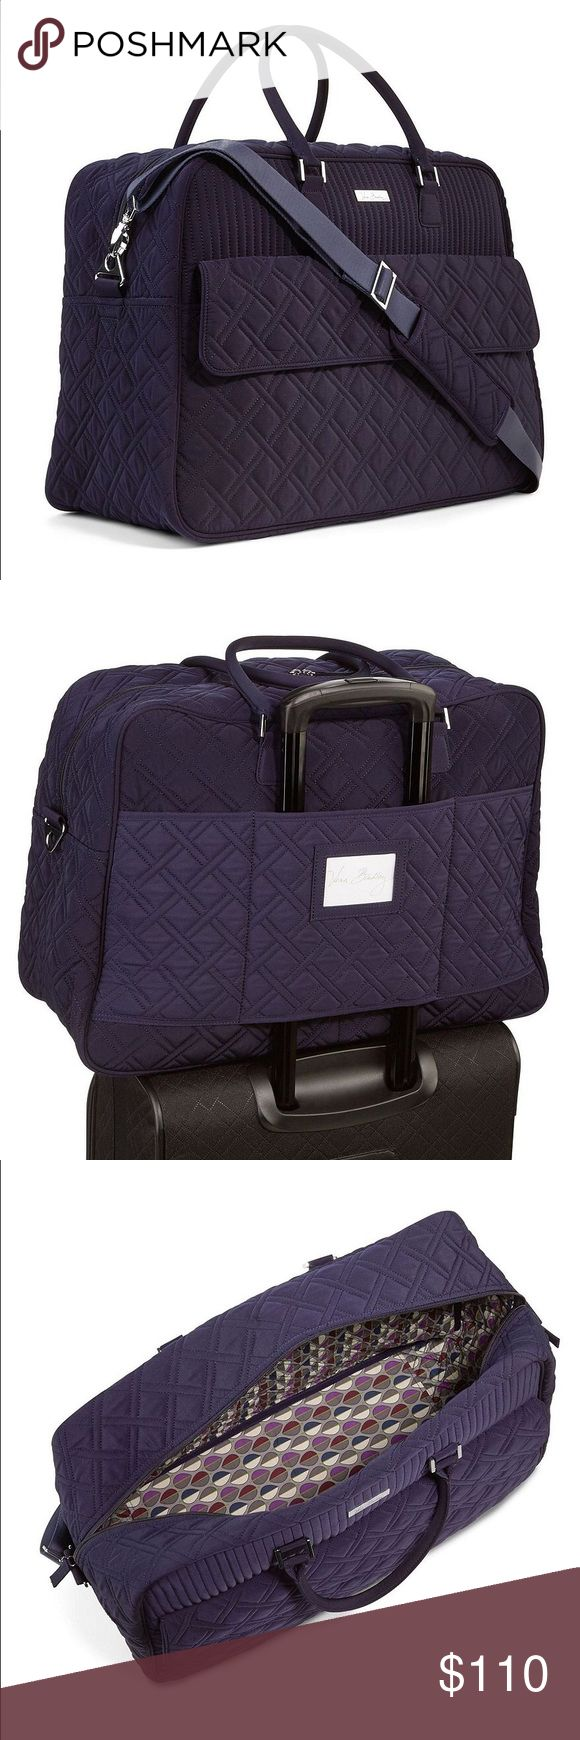 Vera Bradley Grand Traveler Bag Vera Bradley navy/dark blue Grand Traveler bag. This bag was only used once and is in mint condition except for the scuff on the clear plastic on the back of bag as pictures. This is a carry on compliant bag. Has a trolley slip on back to slip onto your roller luggage. Large front pocket with flap and 4 interior pockets. Water resistant microfiber material. Vera Bradley Bags Travel Bags